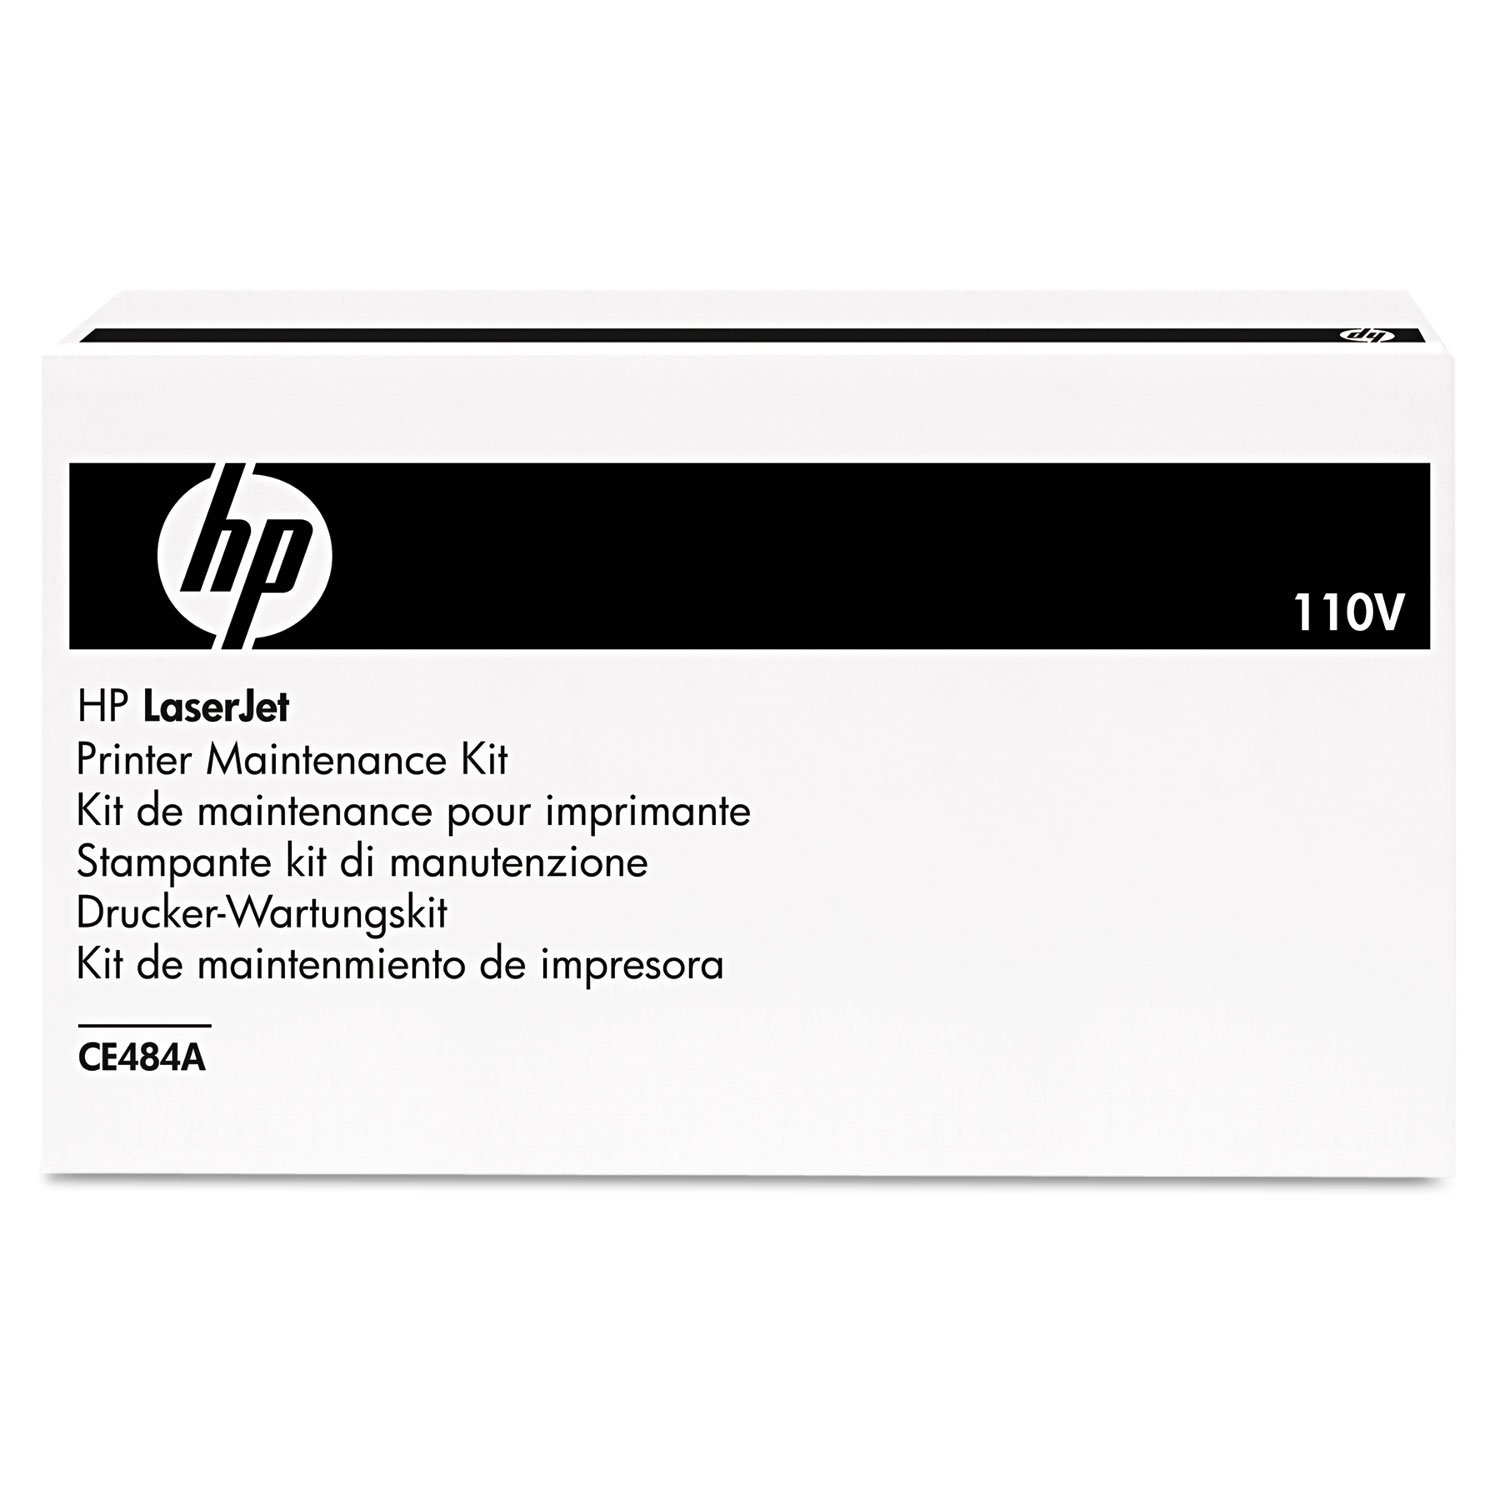 Amazon.com: HP CE484A Laser Printer Volt Kit, 110 V AC ...